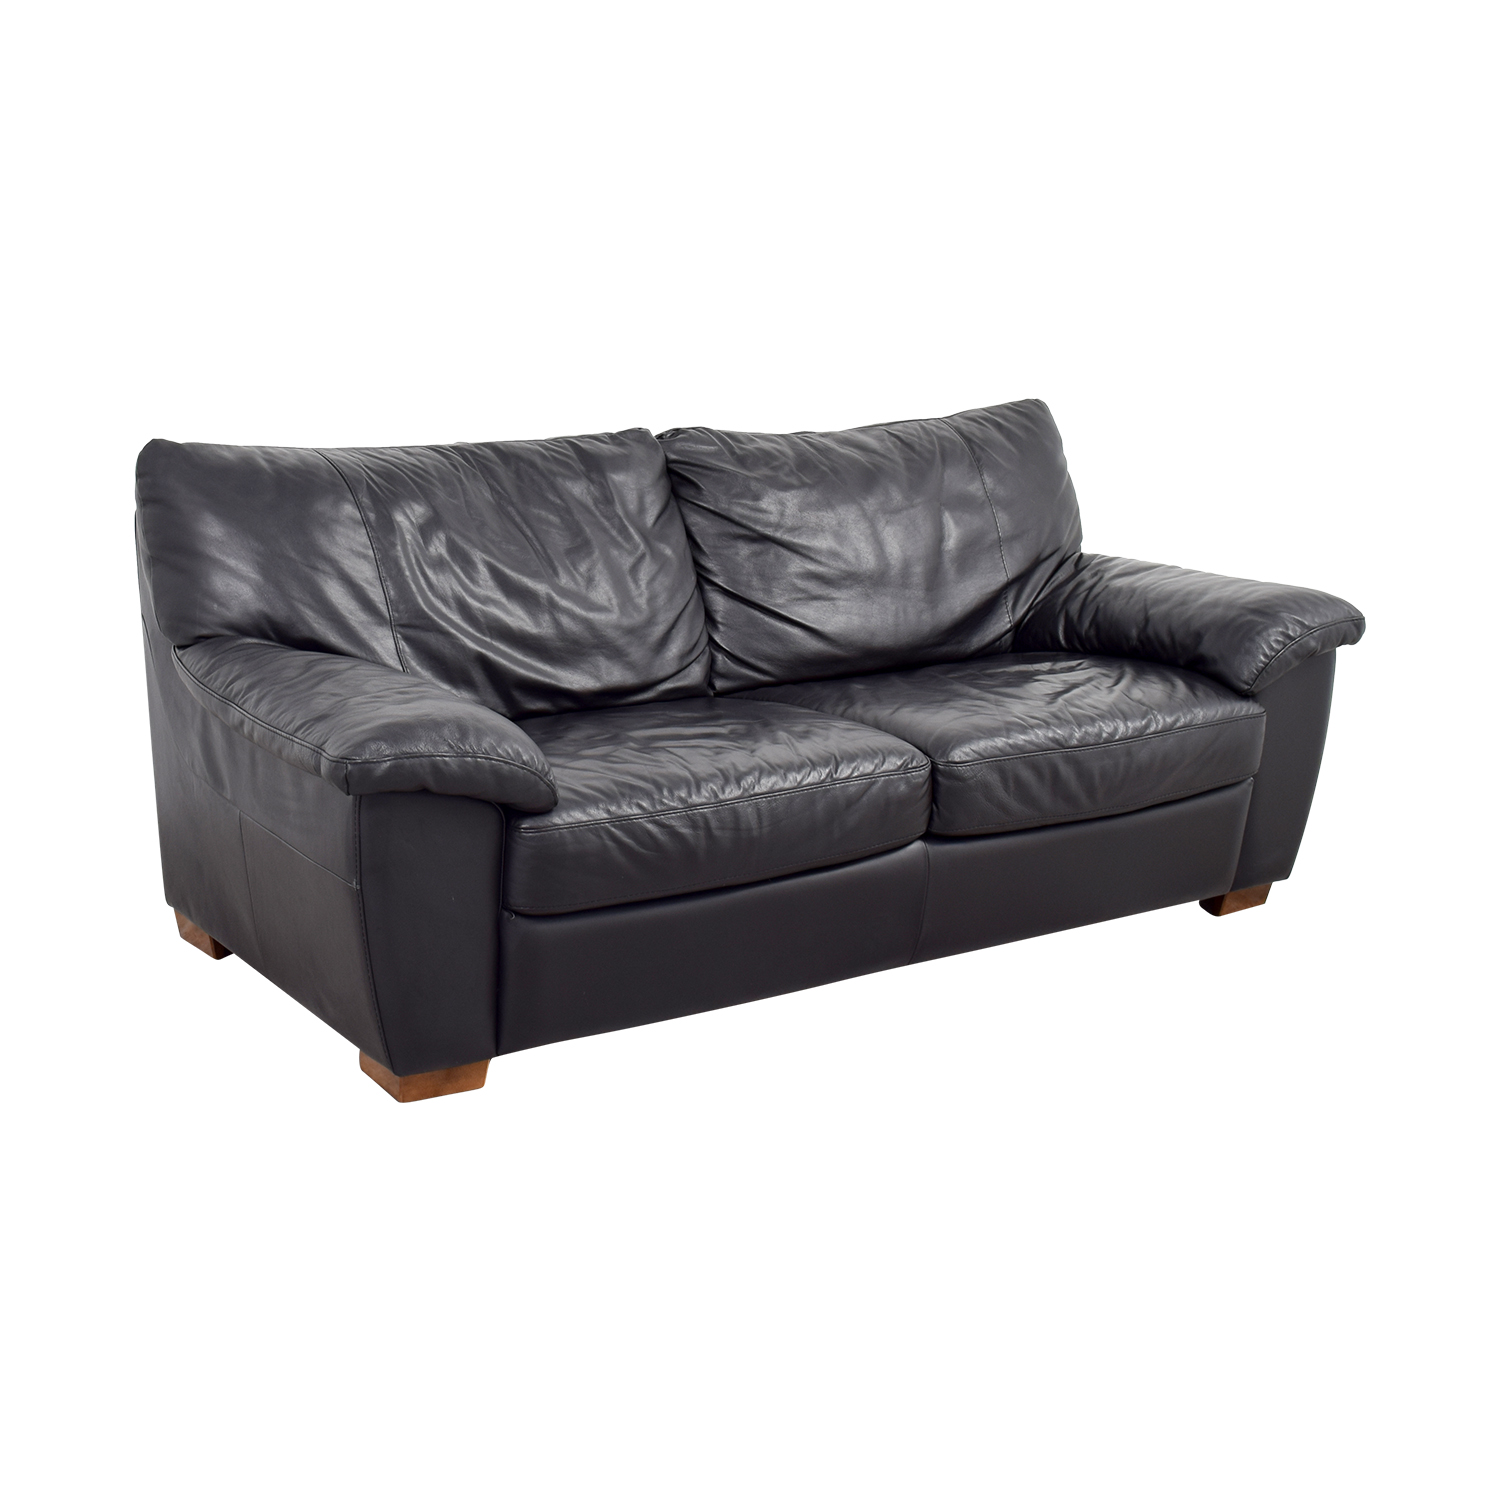 Black Leather Chairs Ikea 90 Off Ikea Ikea Black Leather Two Cushion Couch Sofas